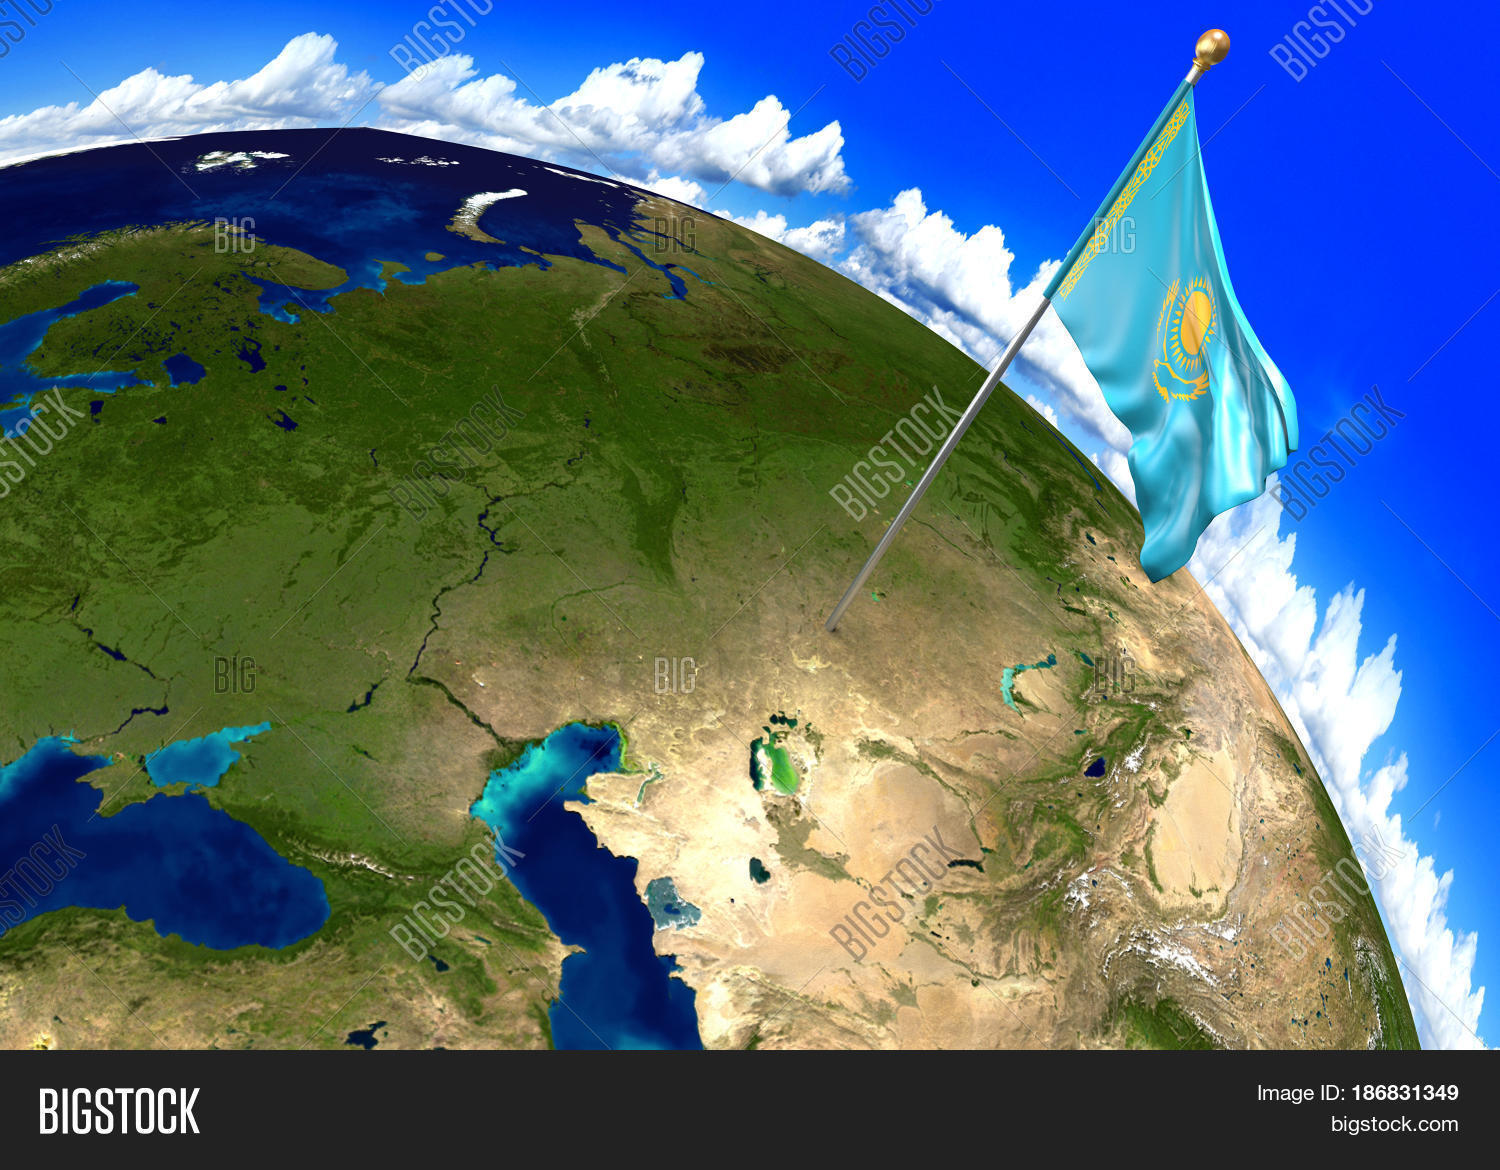 Picture of: Kazakhstan National Image Photo Free Trial Bigstock